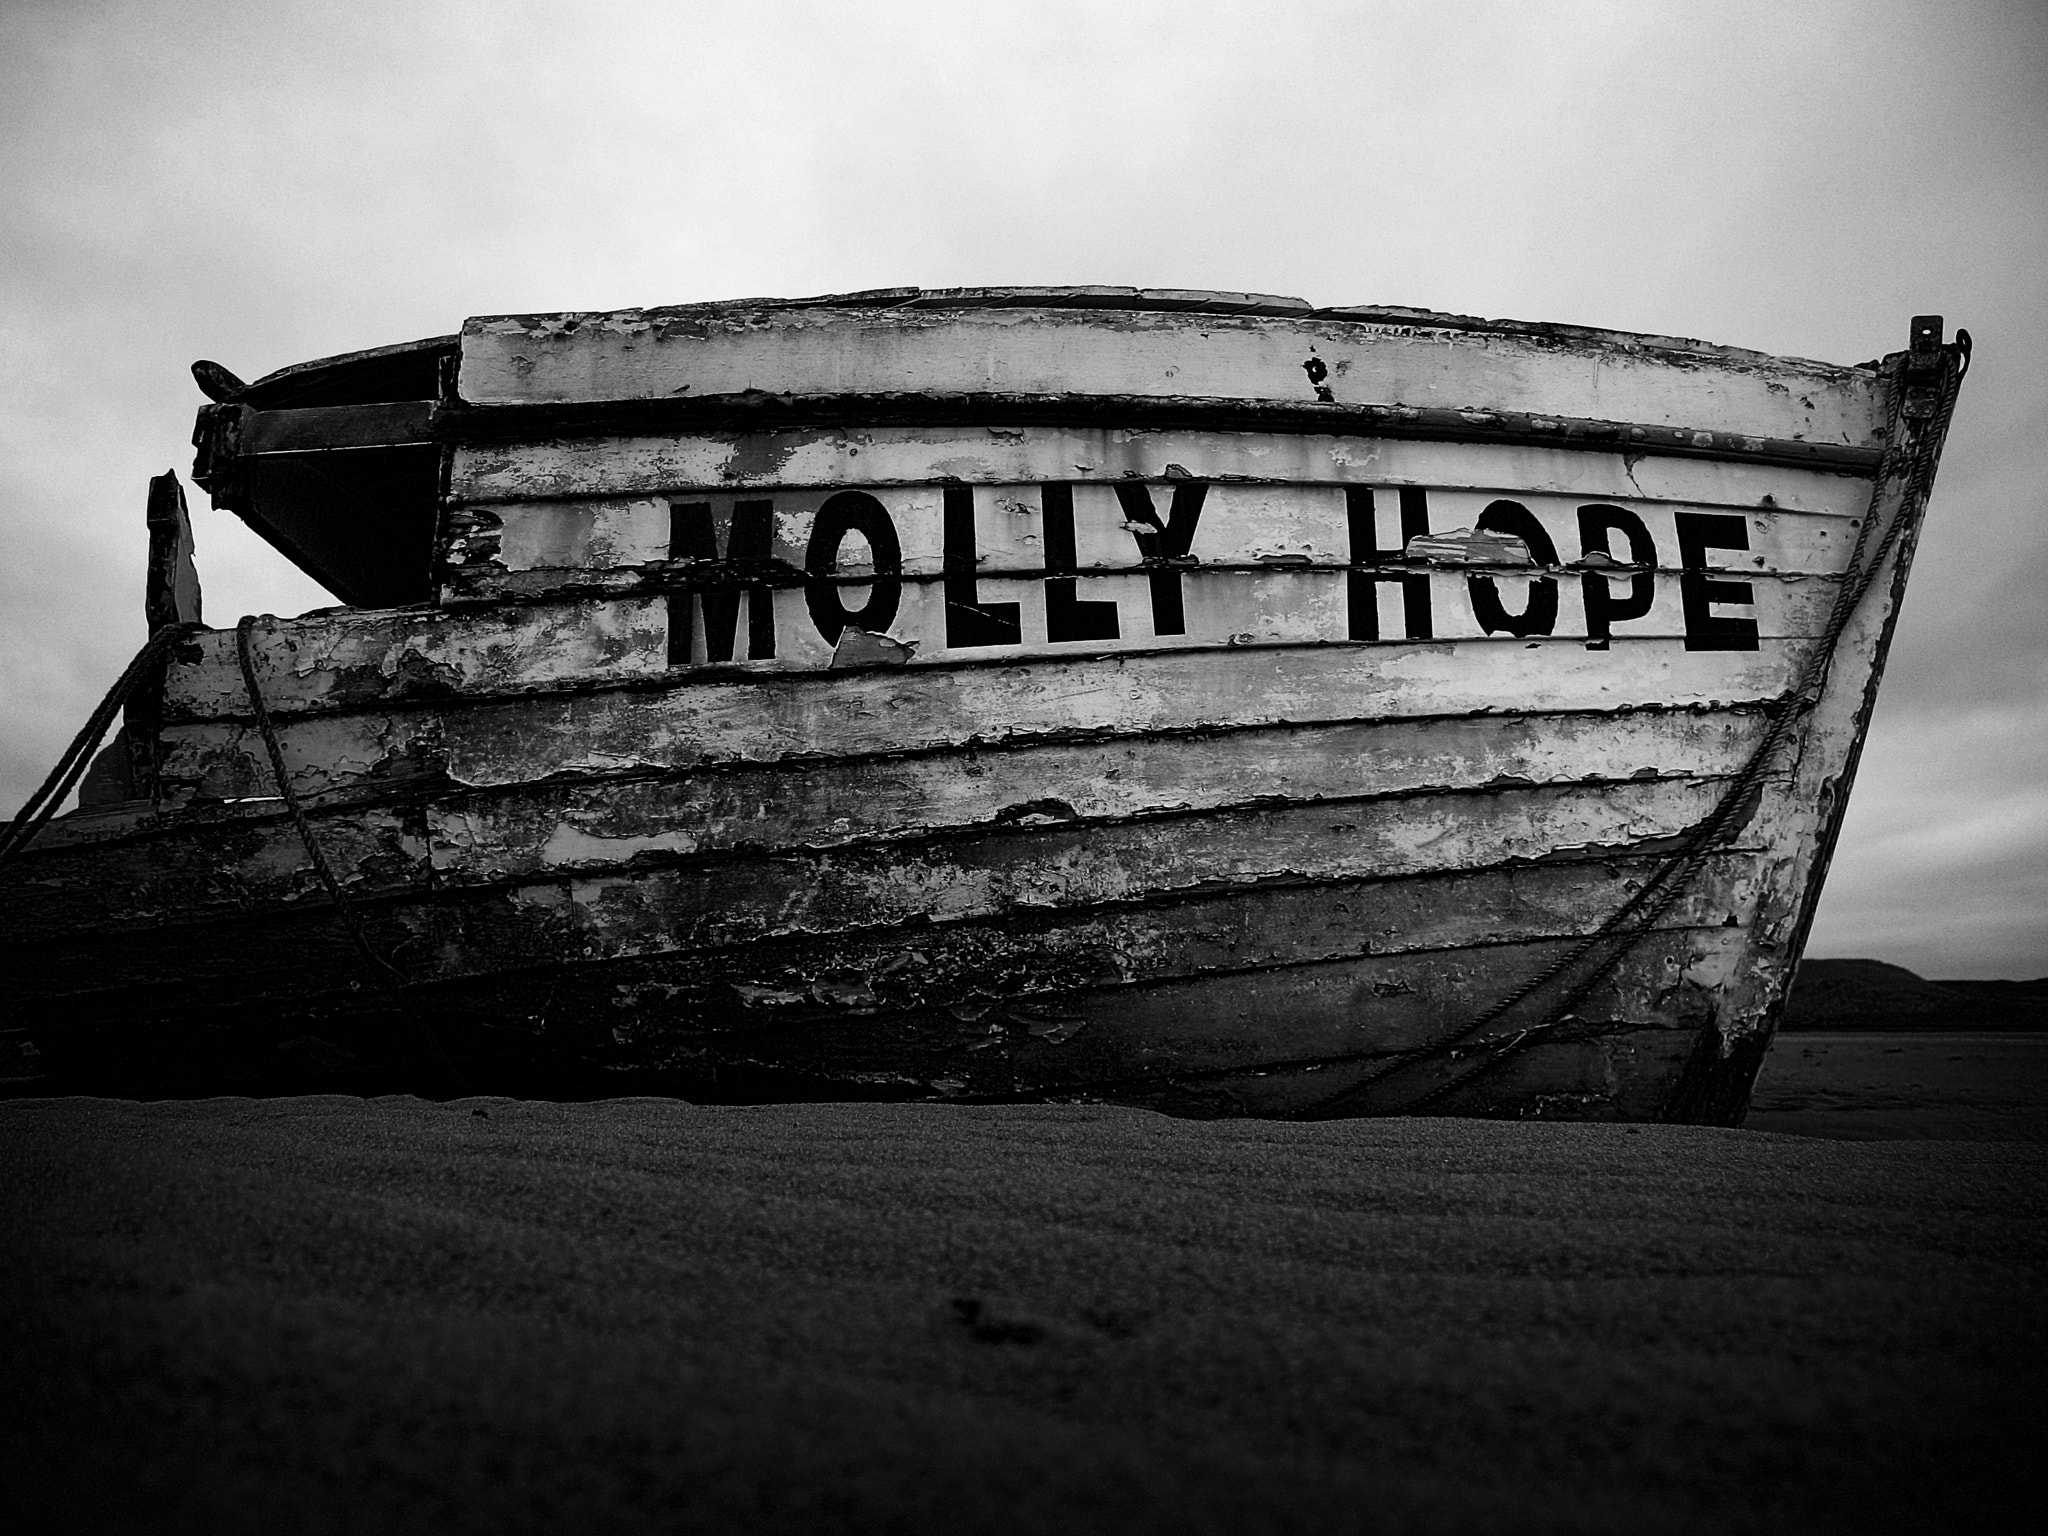 Photograph Molly hope by Brian fitz on 500px